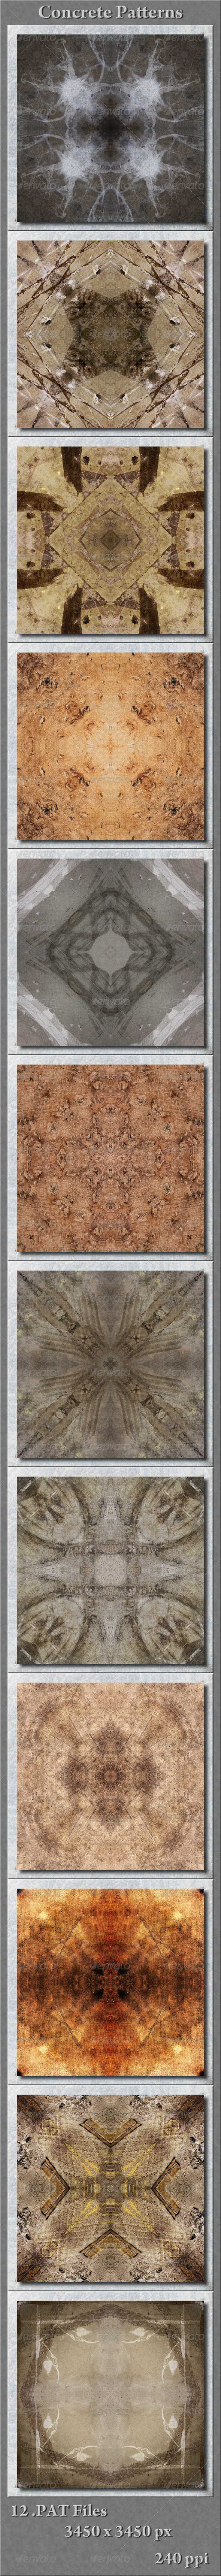 GraphicRiver Concrete Patterns Pkg1 5675404